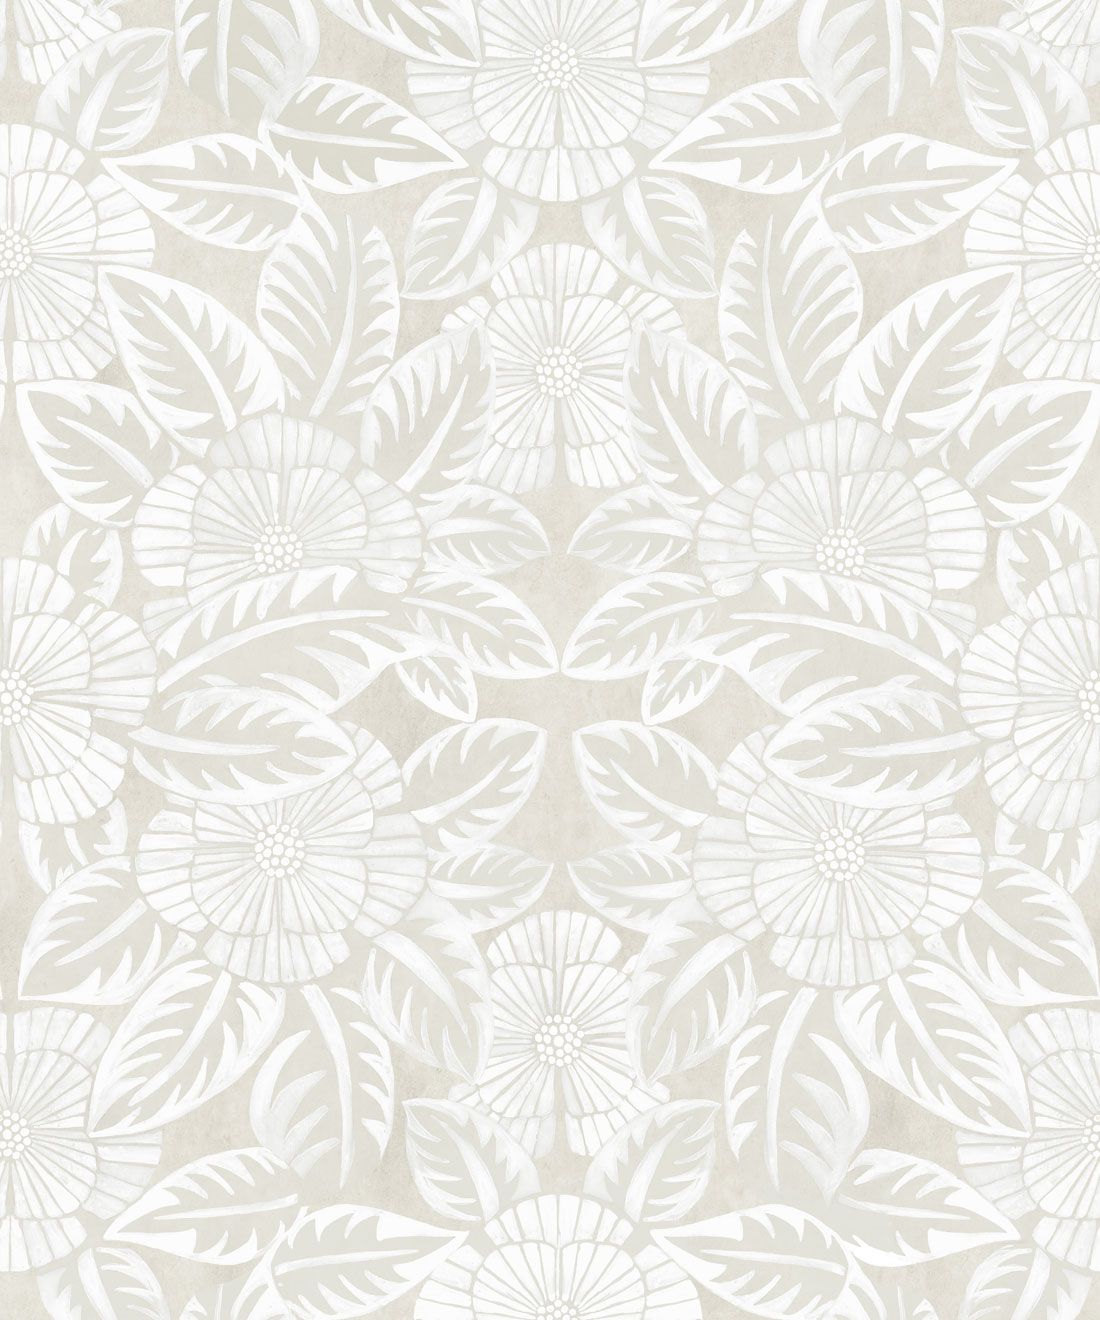 Calcutta Wallpaper • Flower and Leaf Motif Design • Ethnic Wallpaper • Beige Wallpaper • Swatch